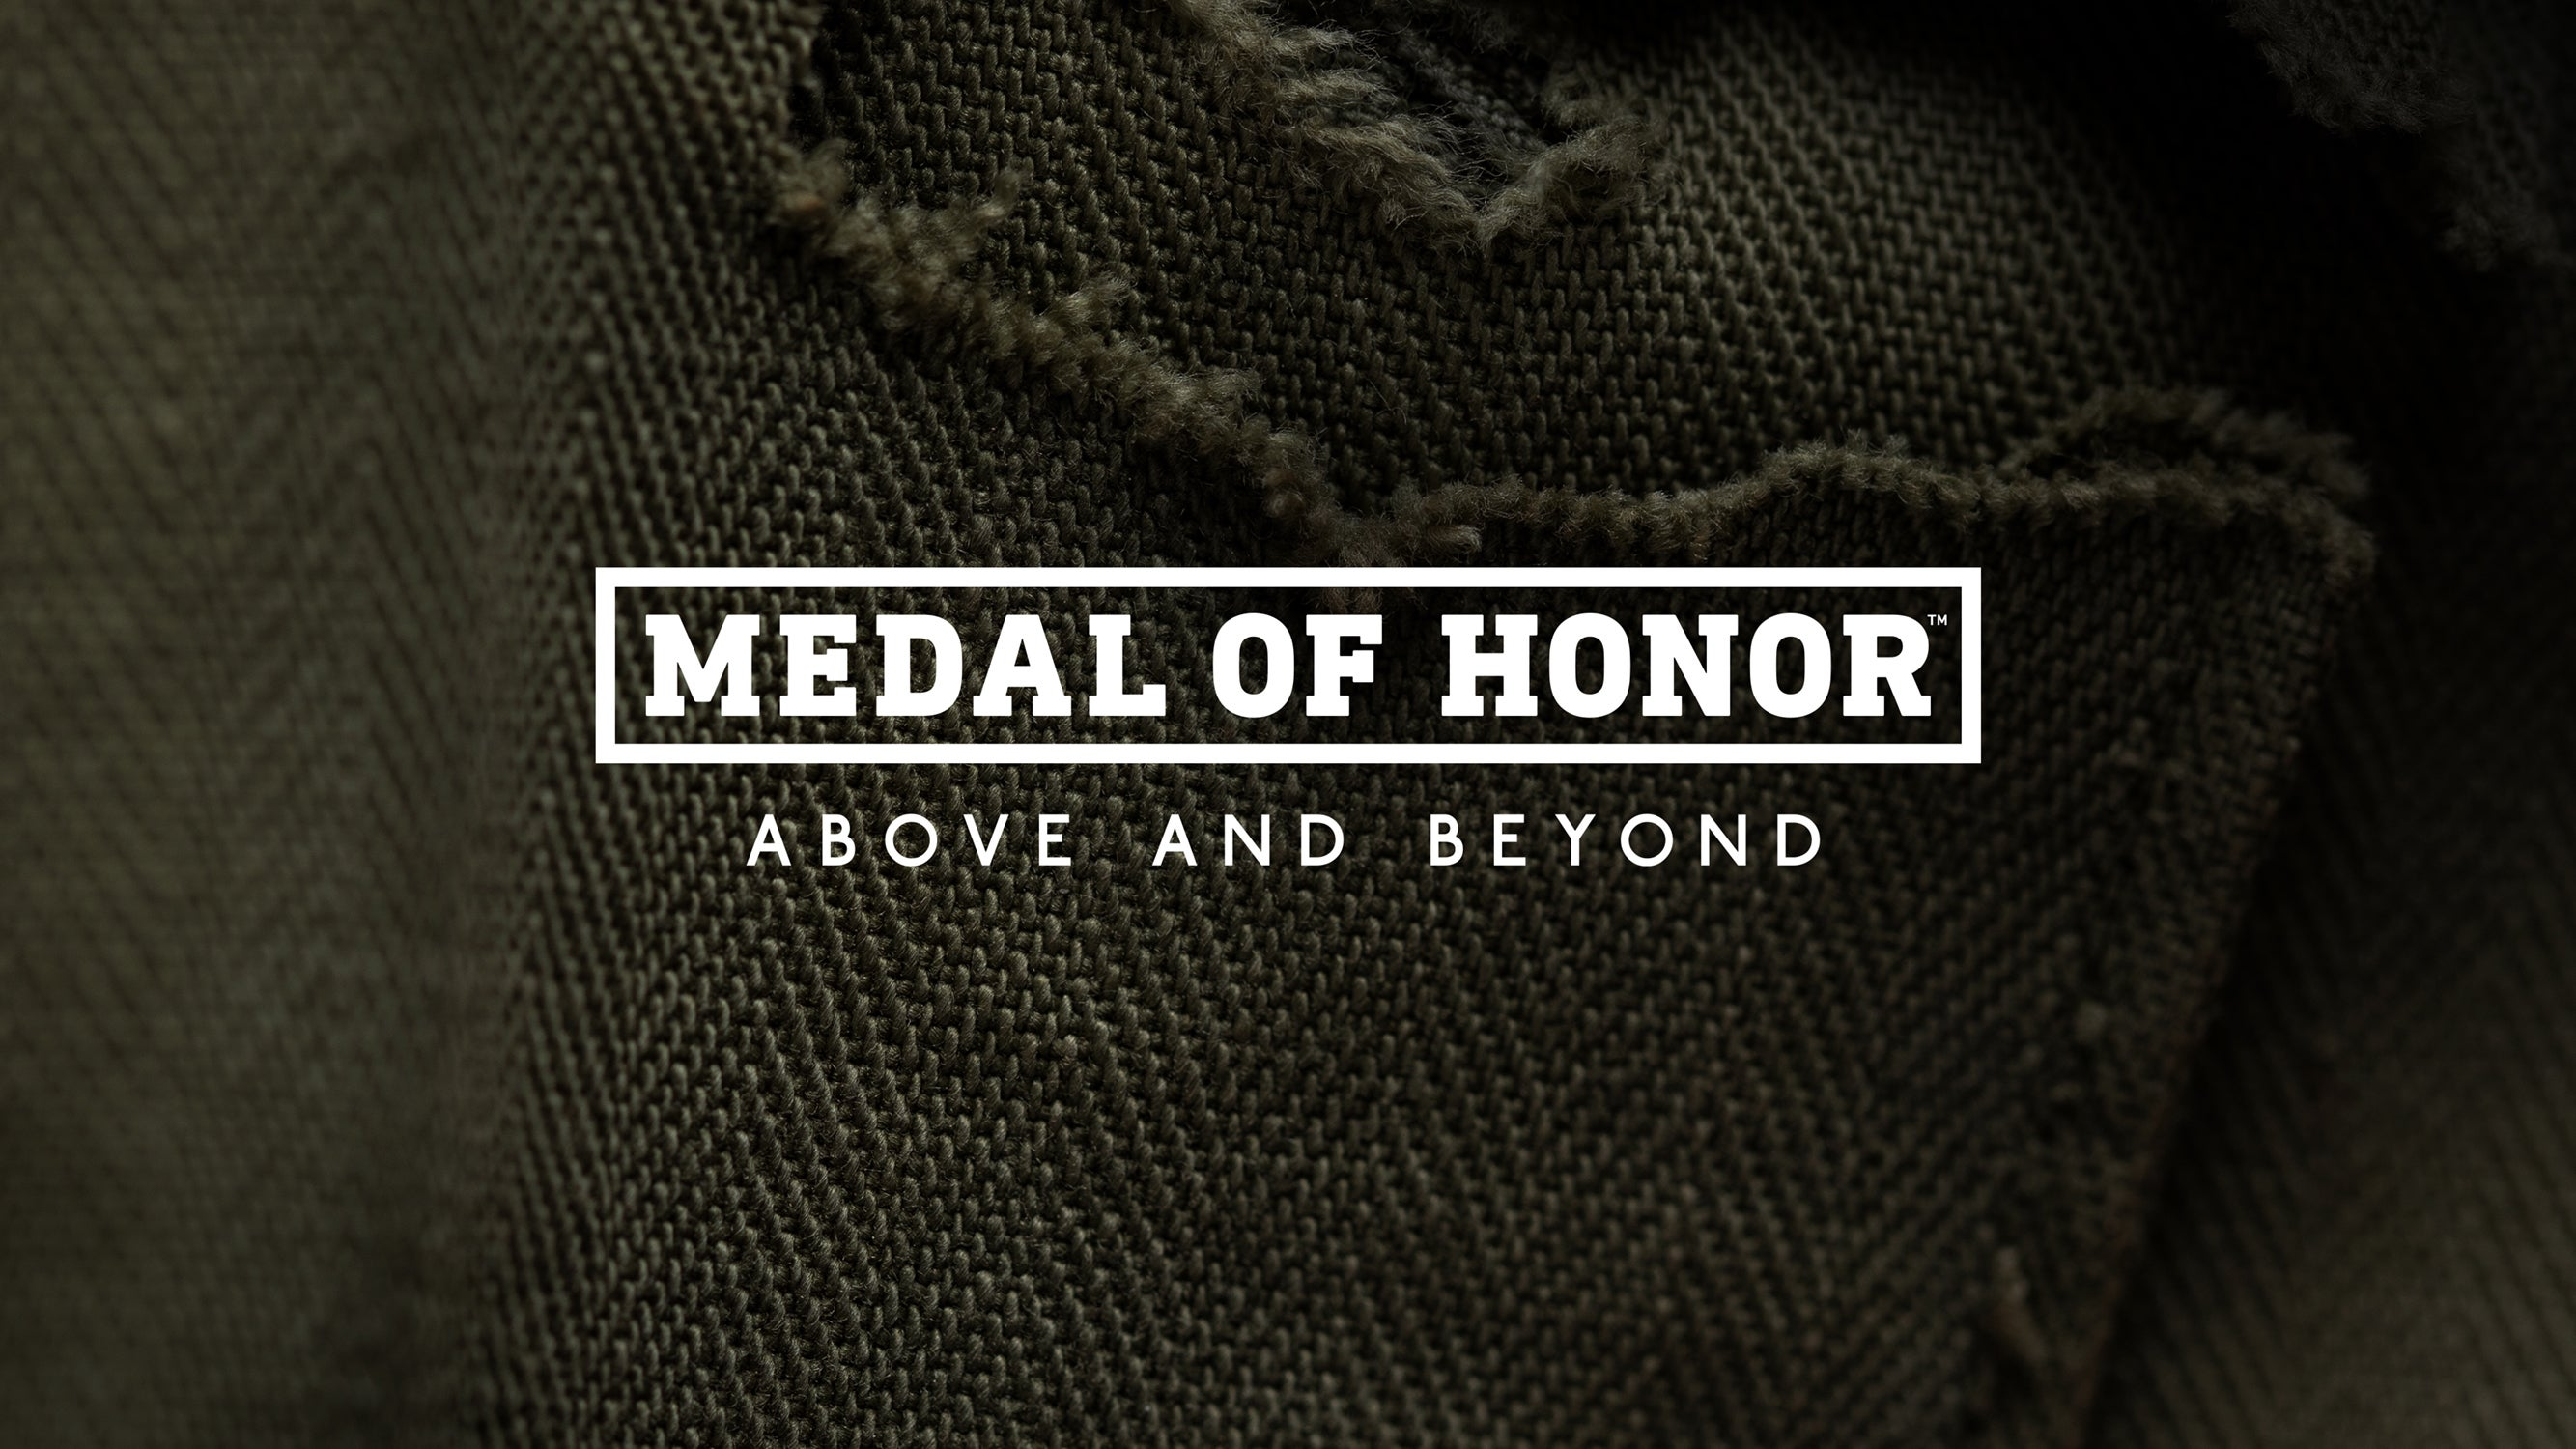 Medal of Honor: Above and Beyond reboots classic shooter in VR